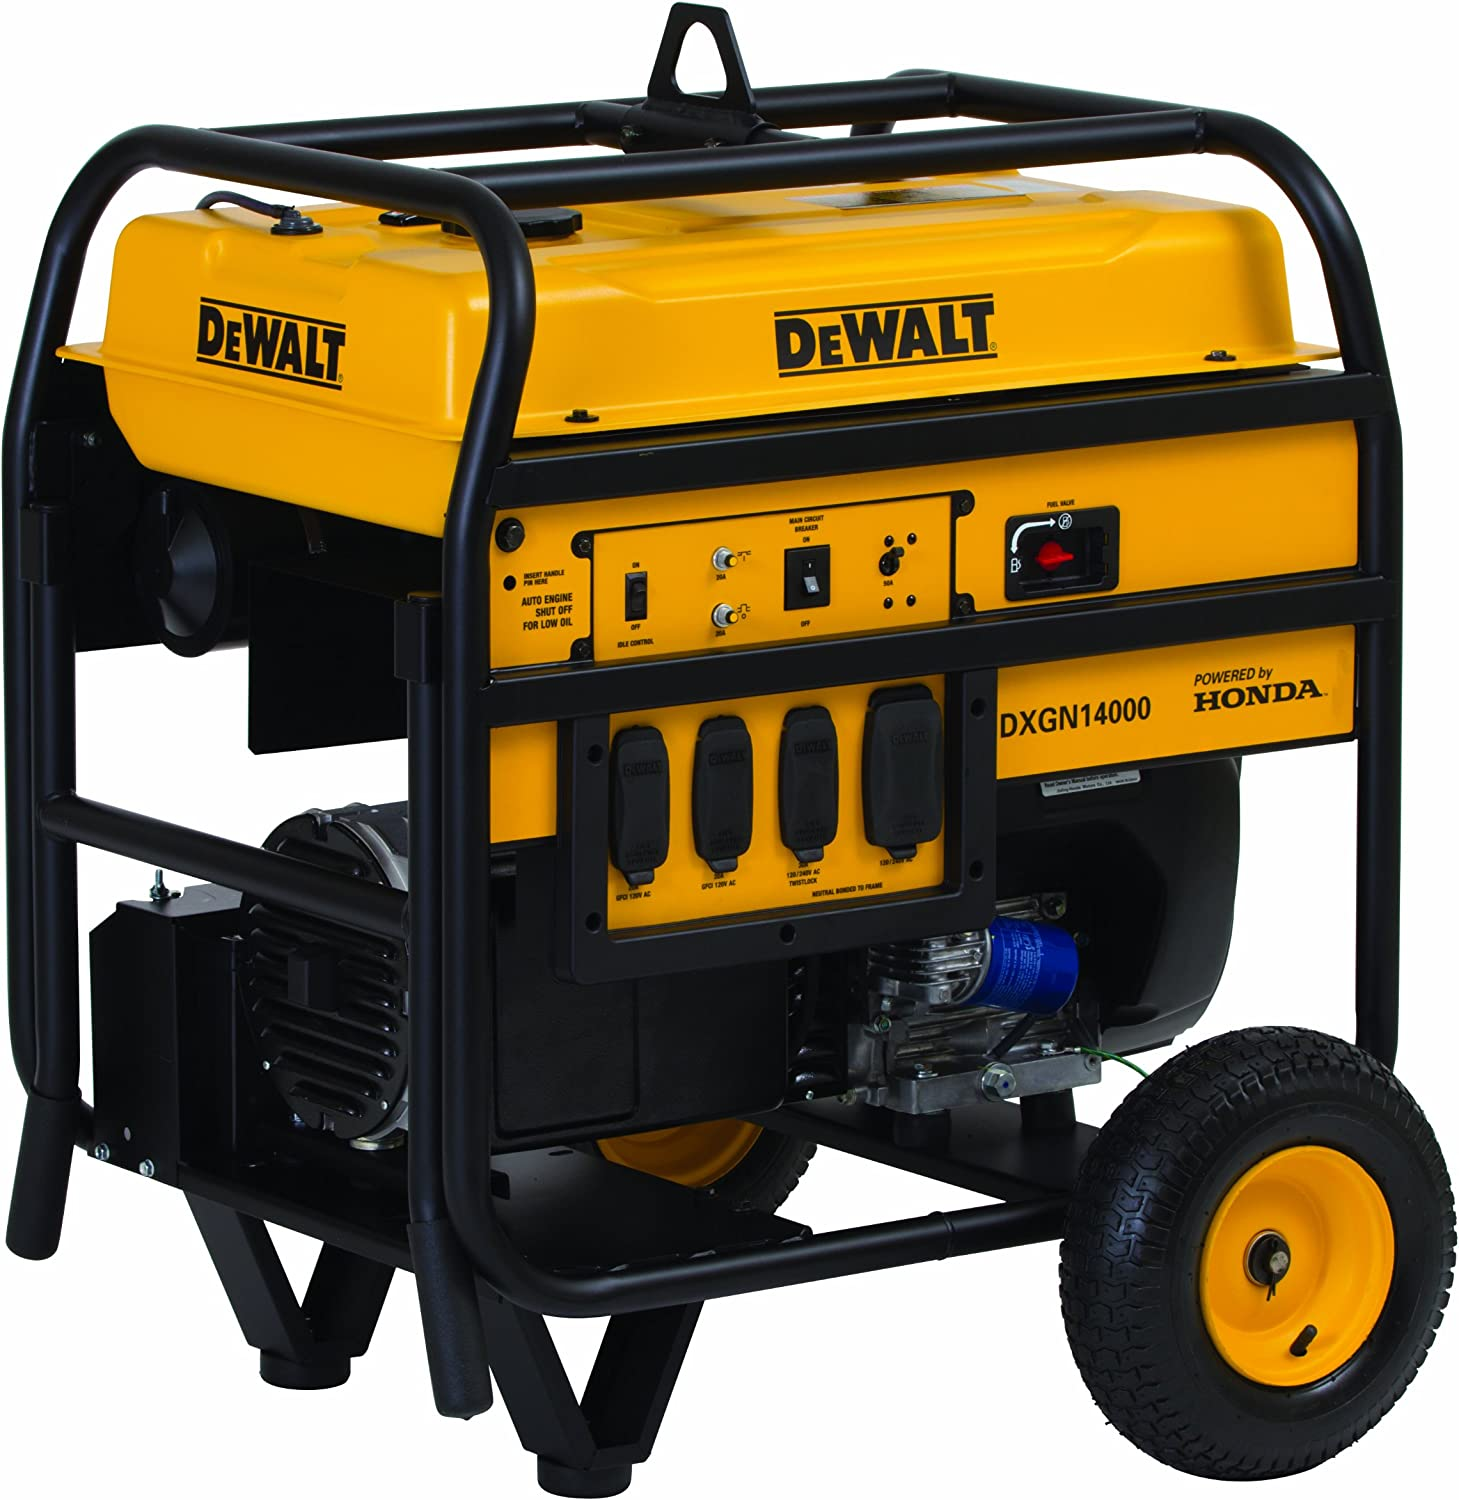 [DIAGRAM_38IU]  Amazon.com : DEWALT 14000 Watt Commercial Generator, Electric Start : Power  Generators : Garden & Outdoor | Dewalt Generator Wiring Diagram |  | Amazon.com